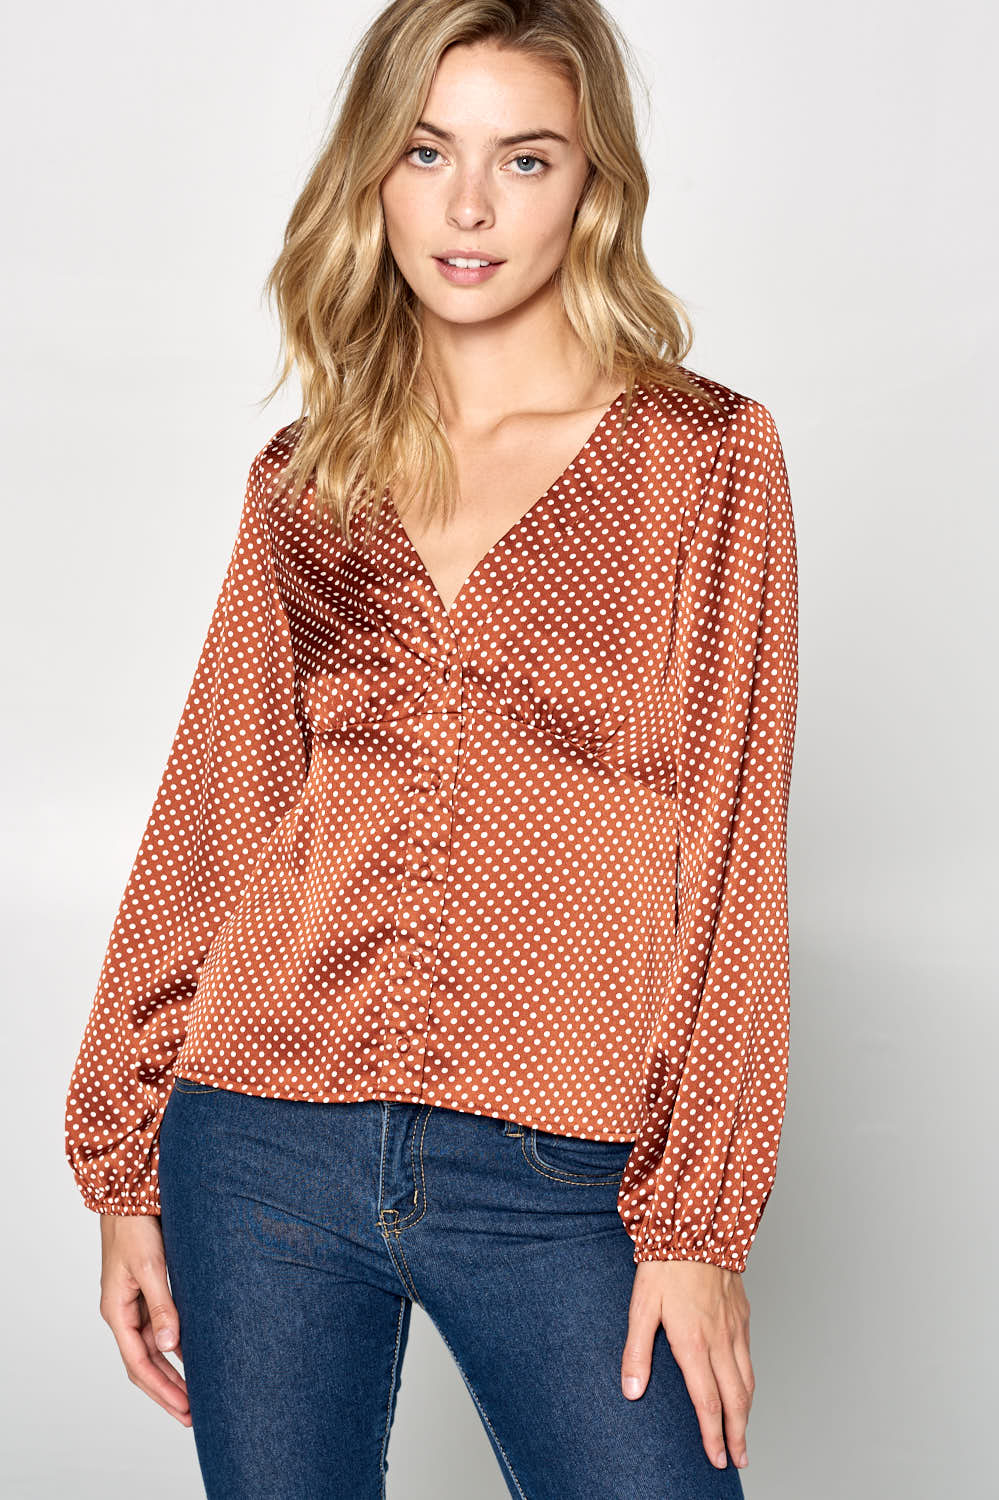 LONG SLEEVE V-NECK POLKA DOT TOP